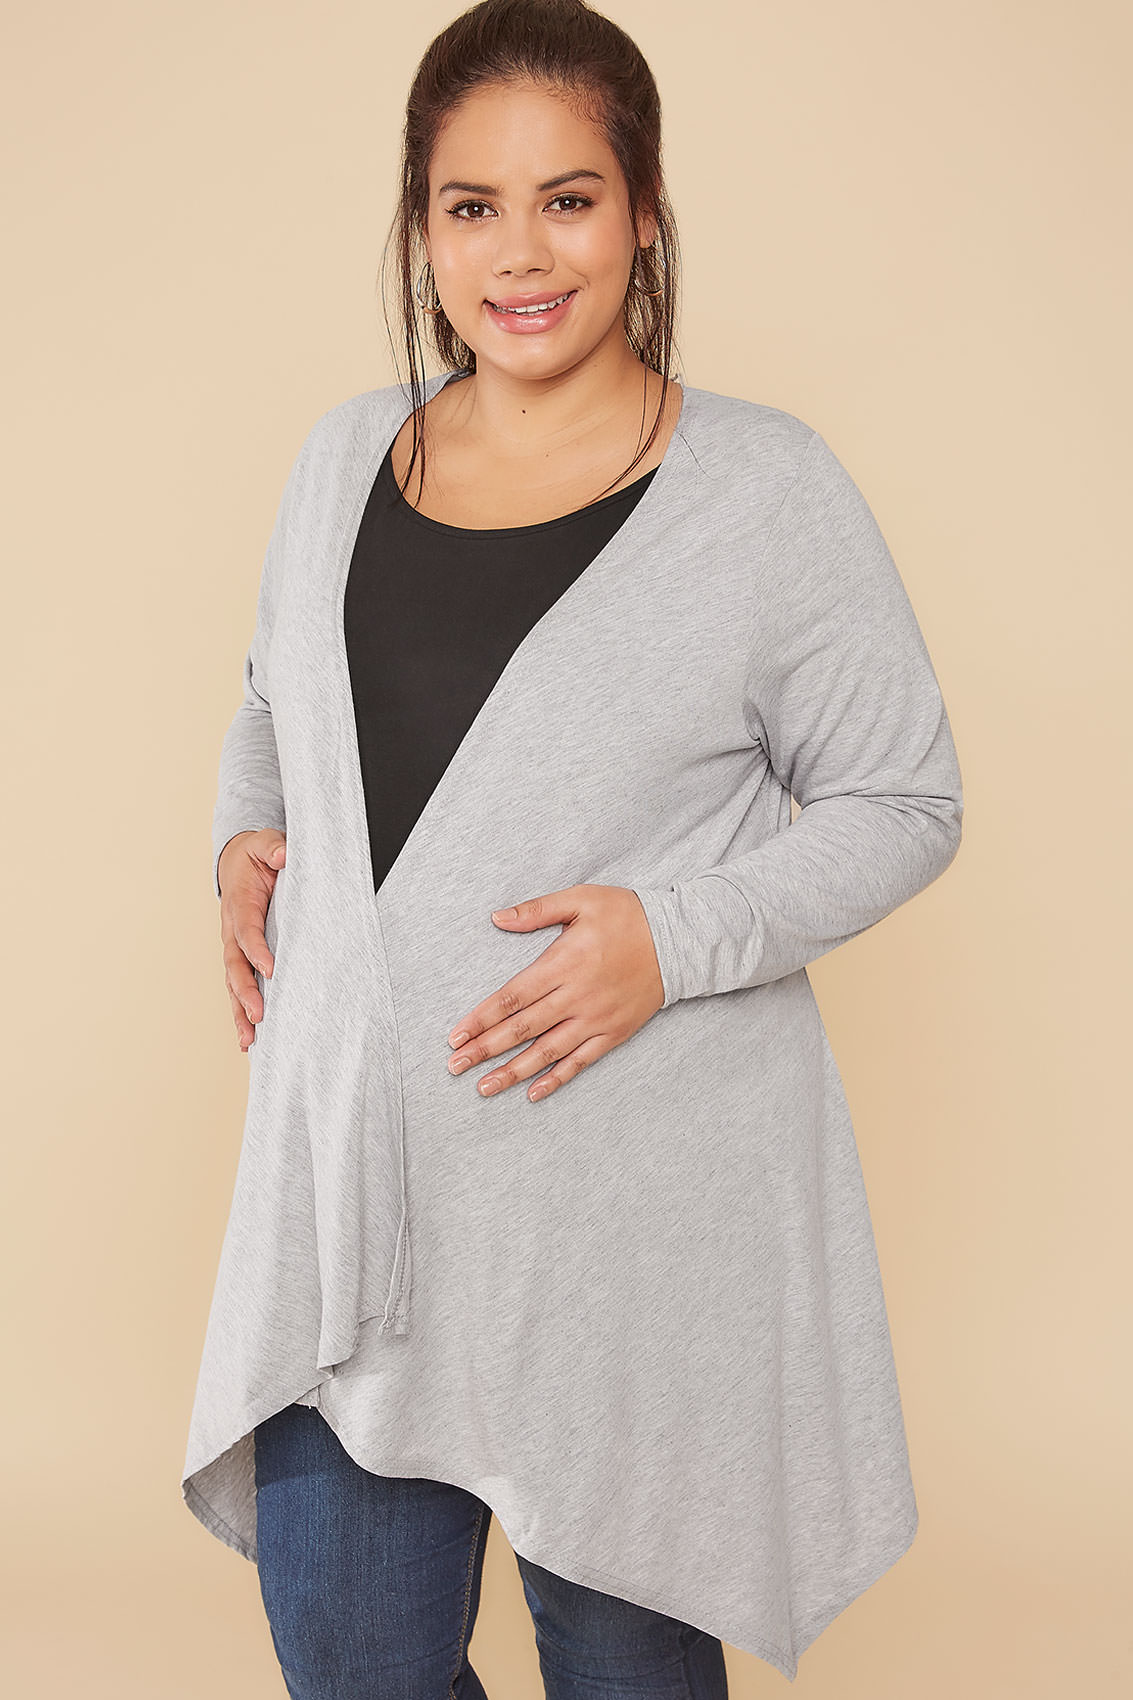 BUMP IT UP MATERNITY Grey Waterfall Cardigan Plus Size 16 to 32